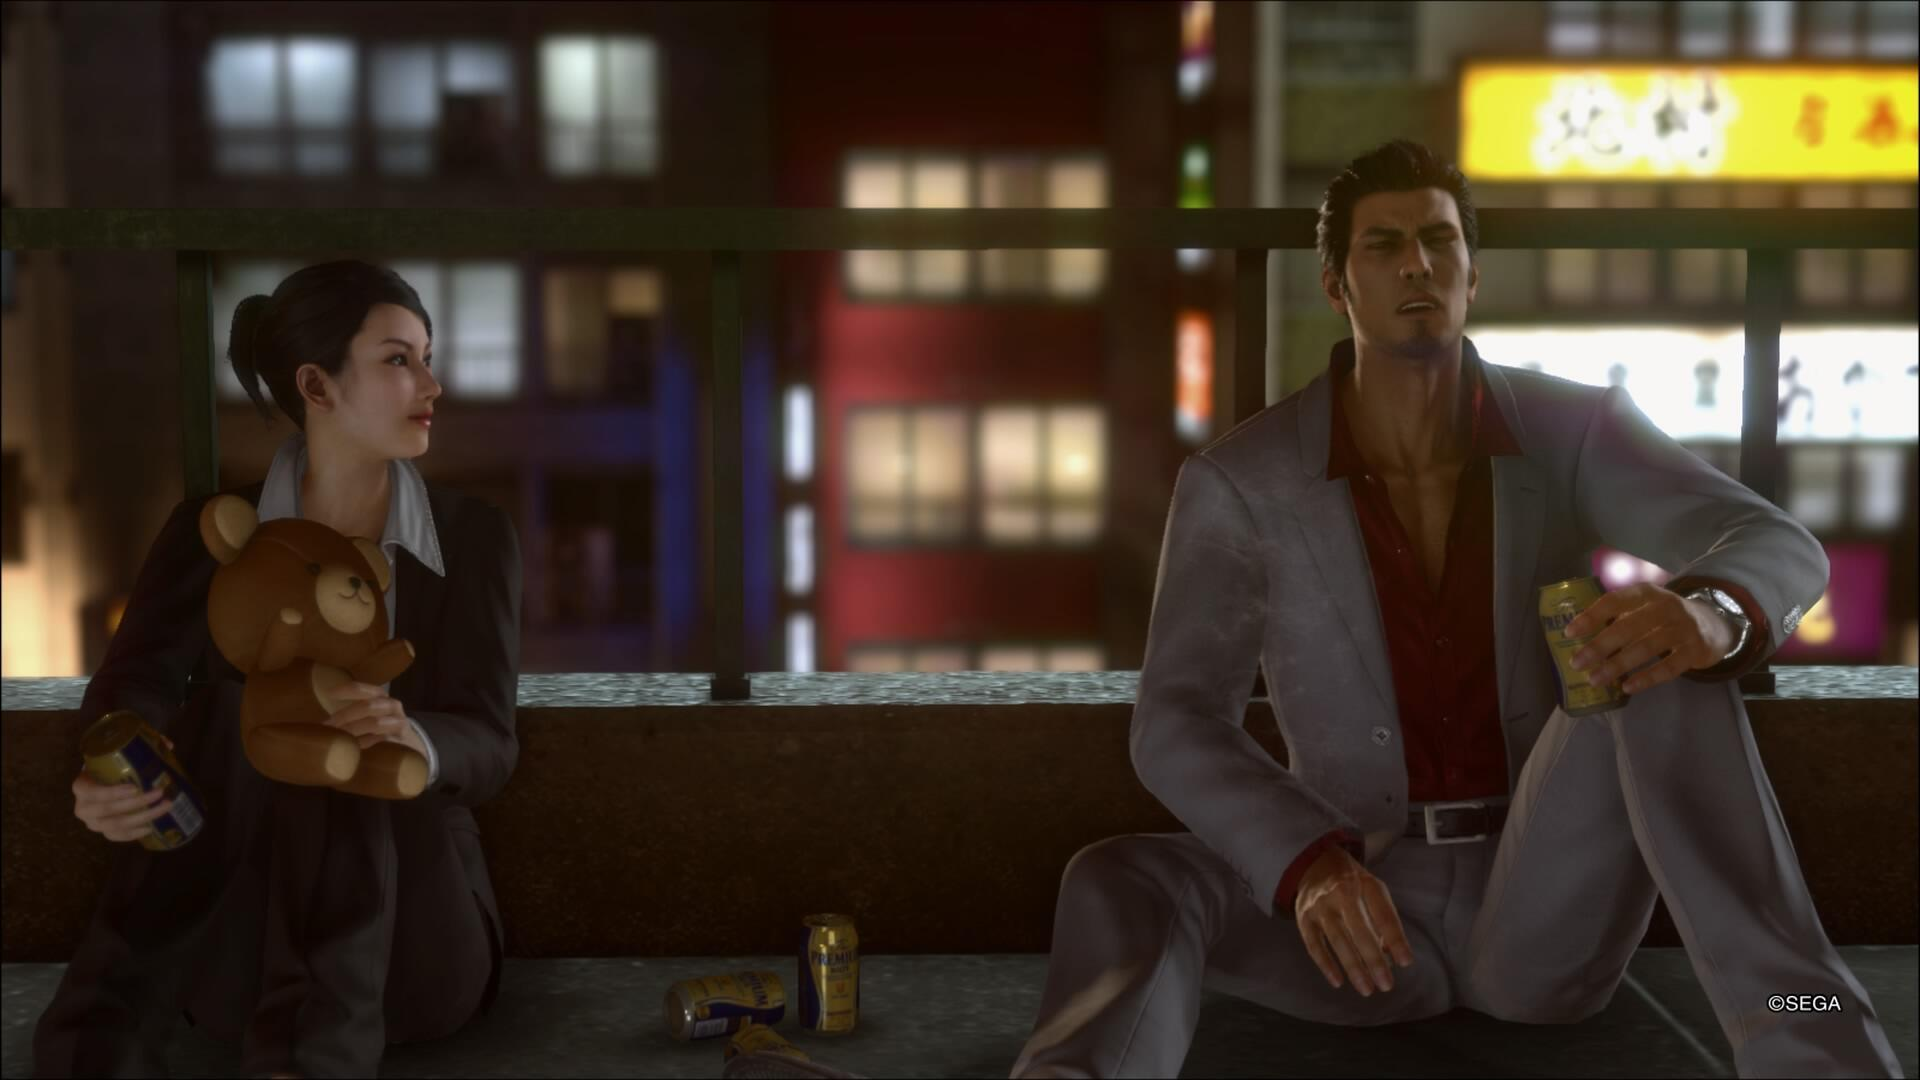 Yakuza Kiwami 2 PC Release Revealed by ESRB Rating